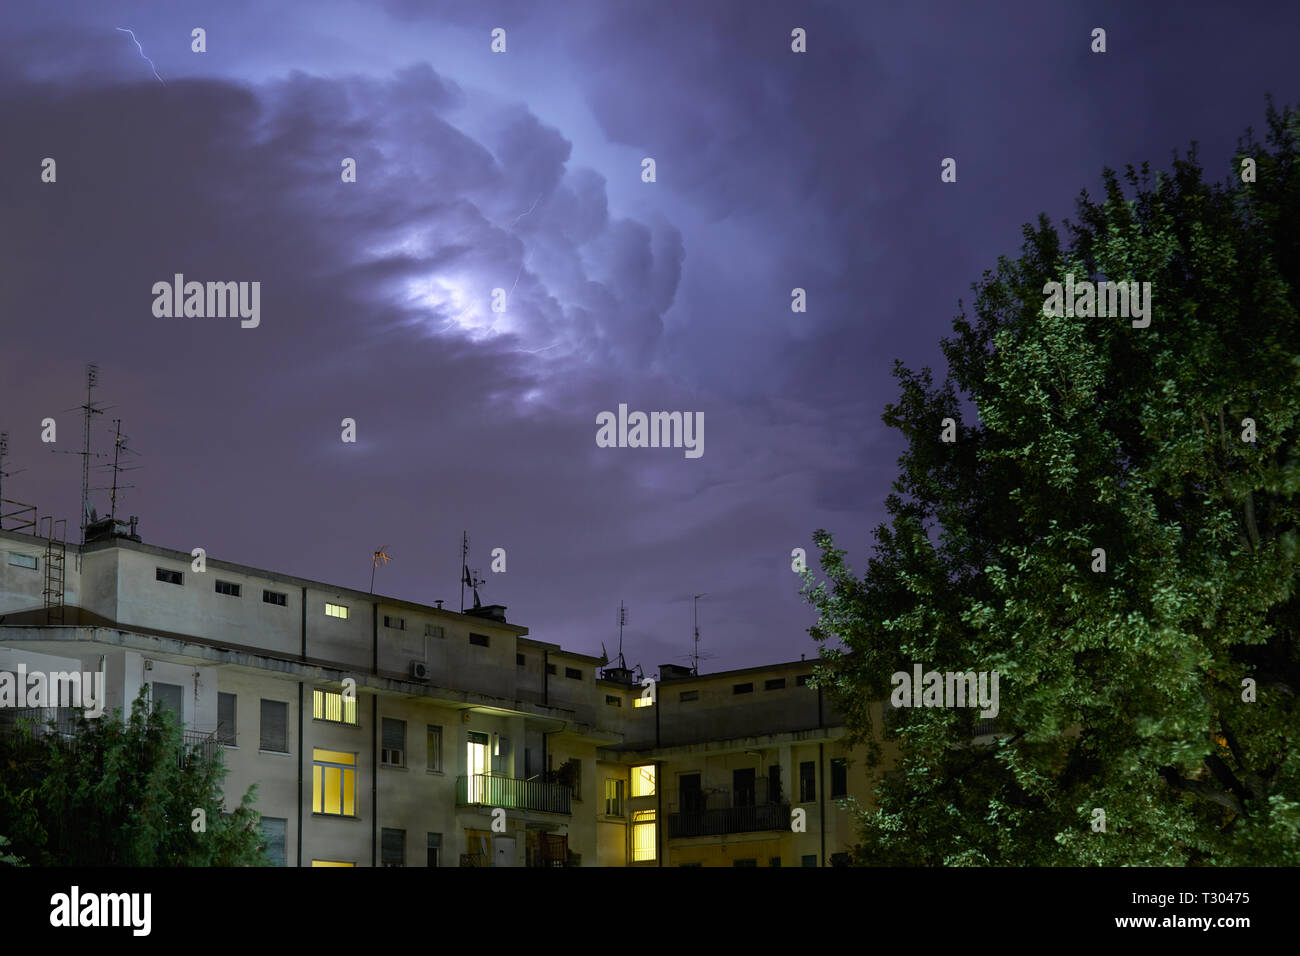 Buildings and green trees at night, illuminated sky during a lightning storm Stock Photo